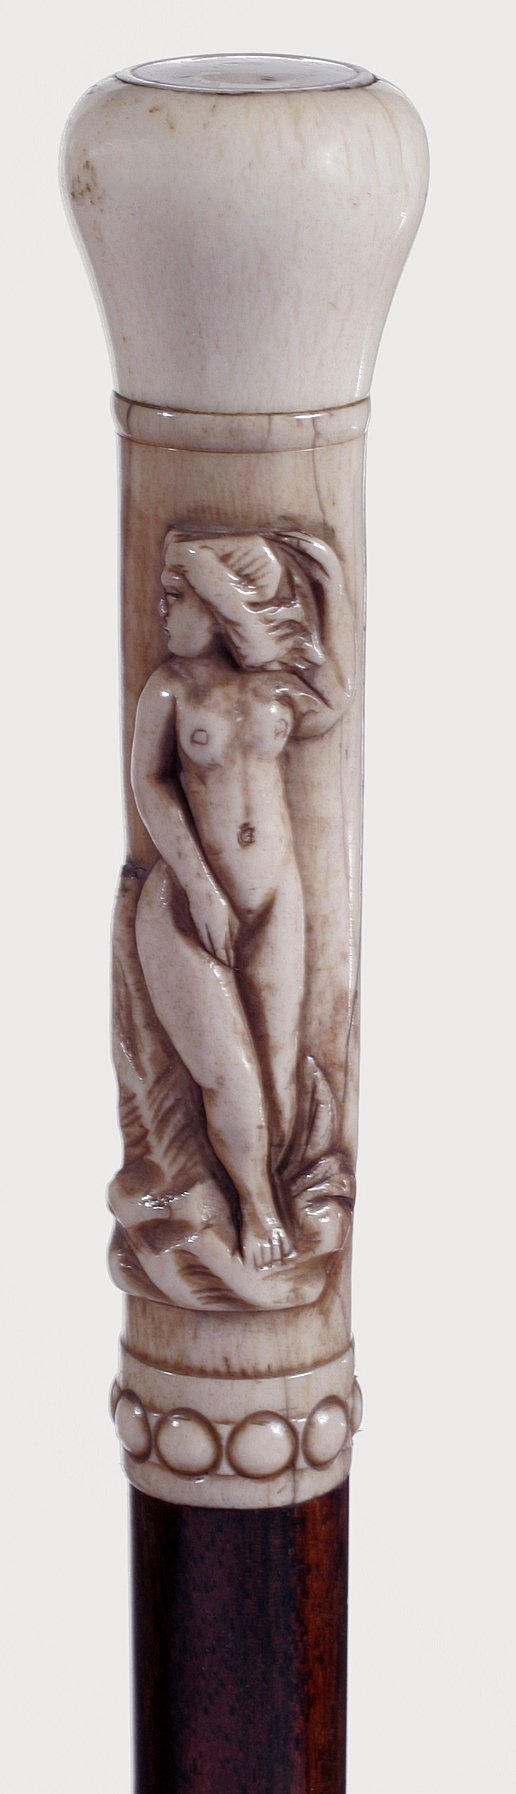 5. Ivory Nude-An Art Nouveau period Cane, exotic wood s